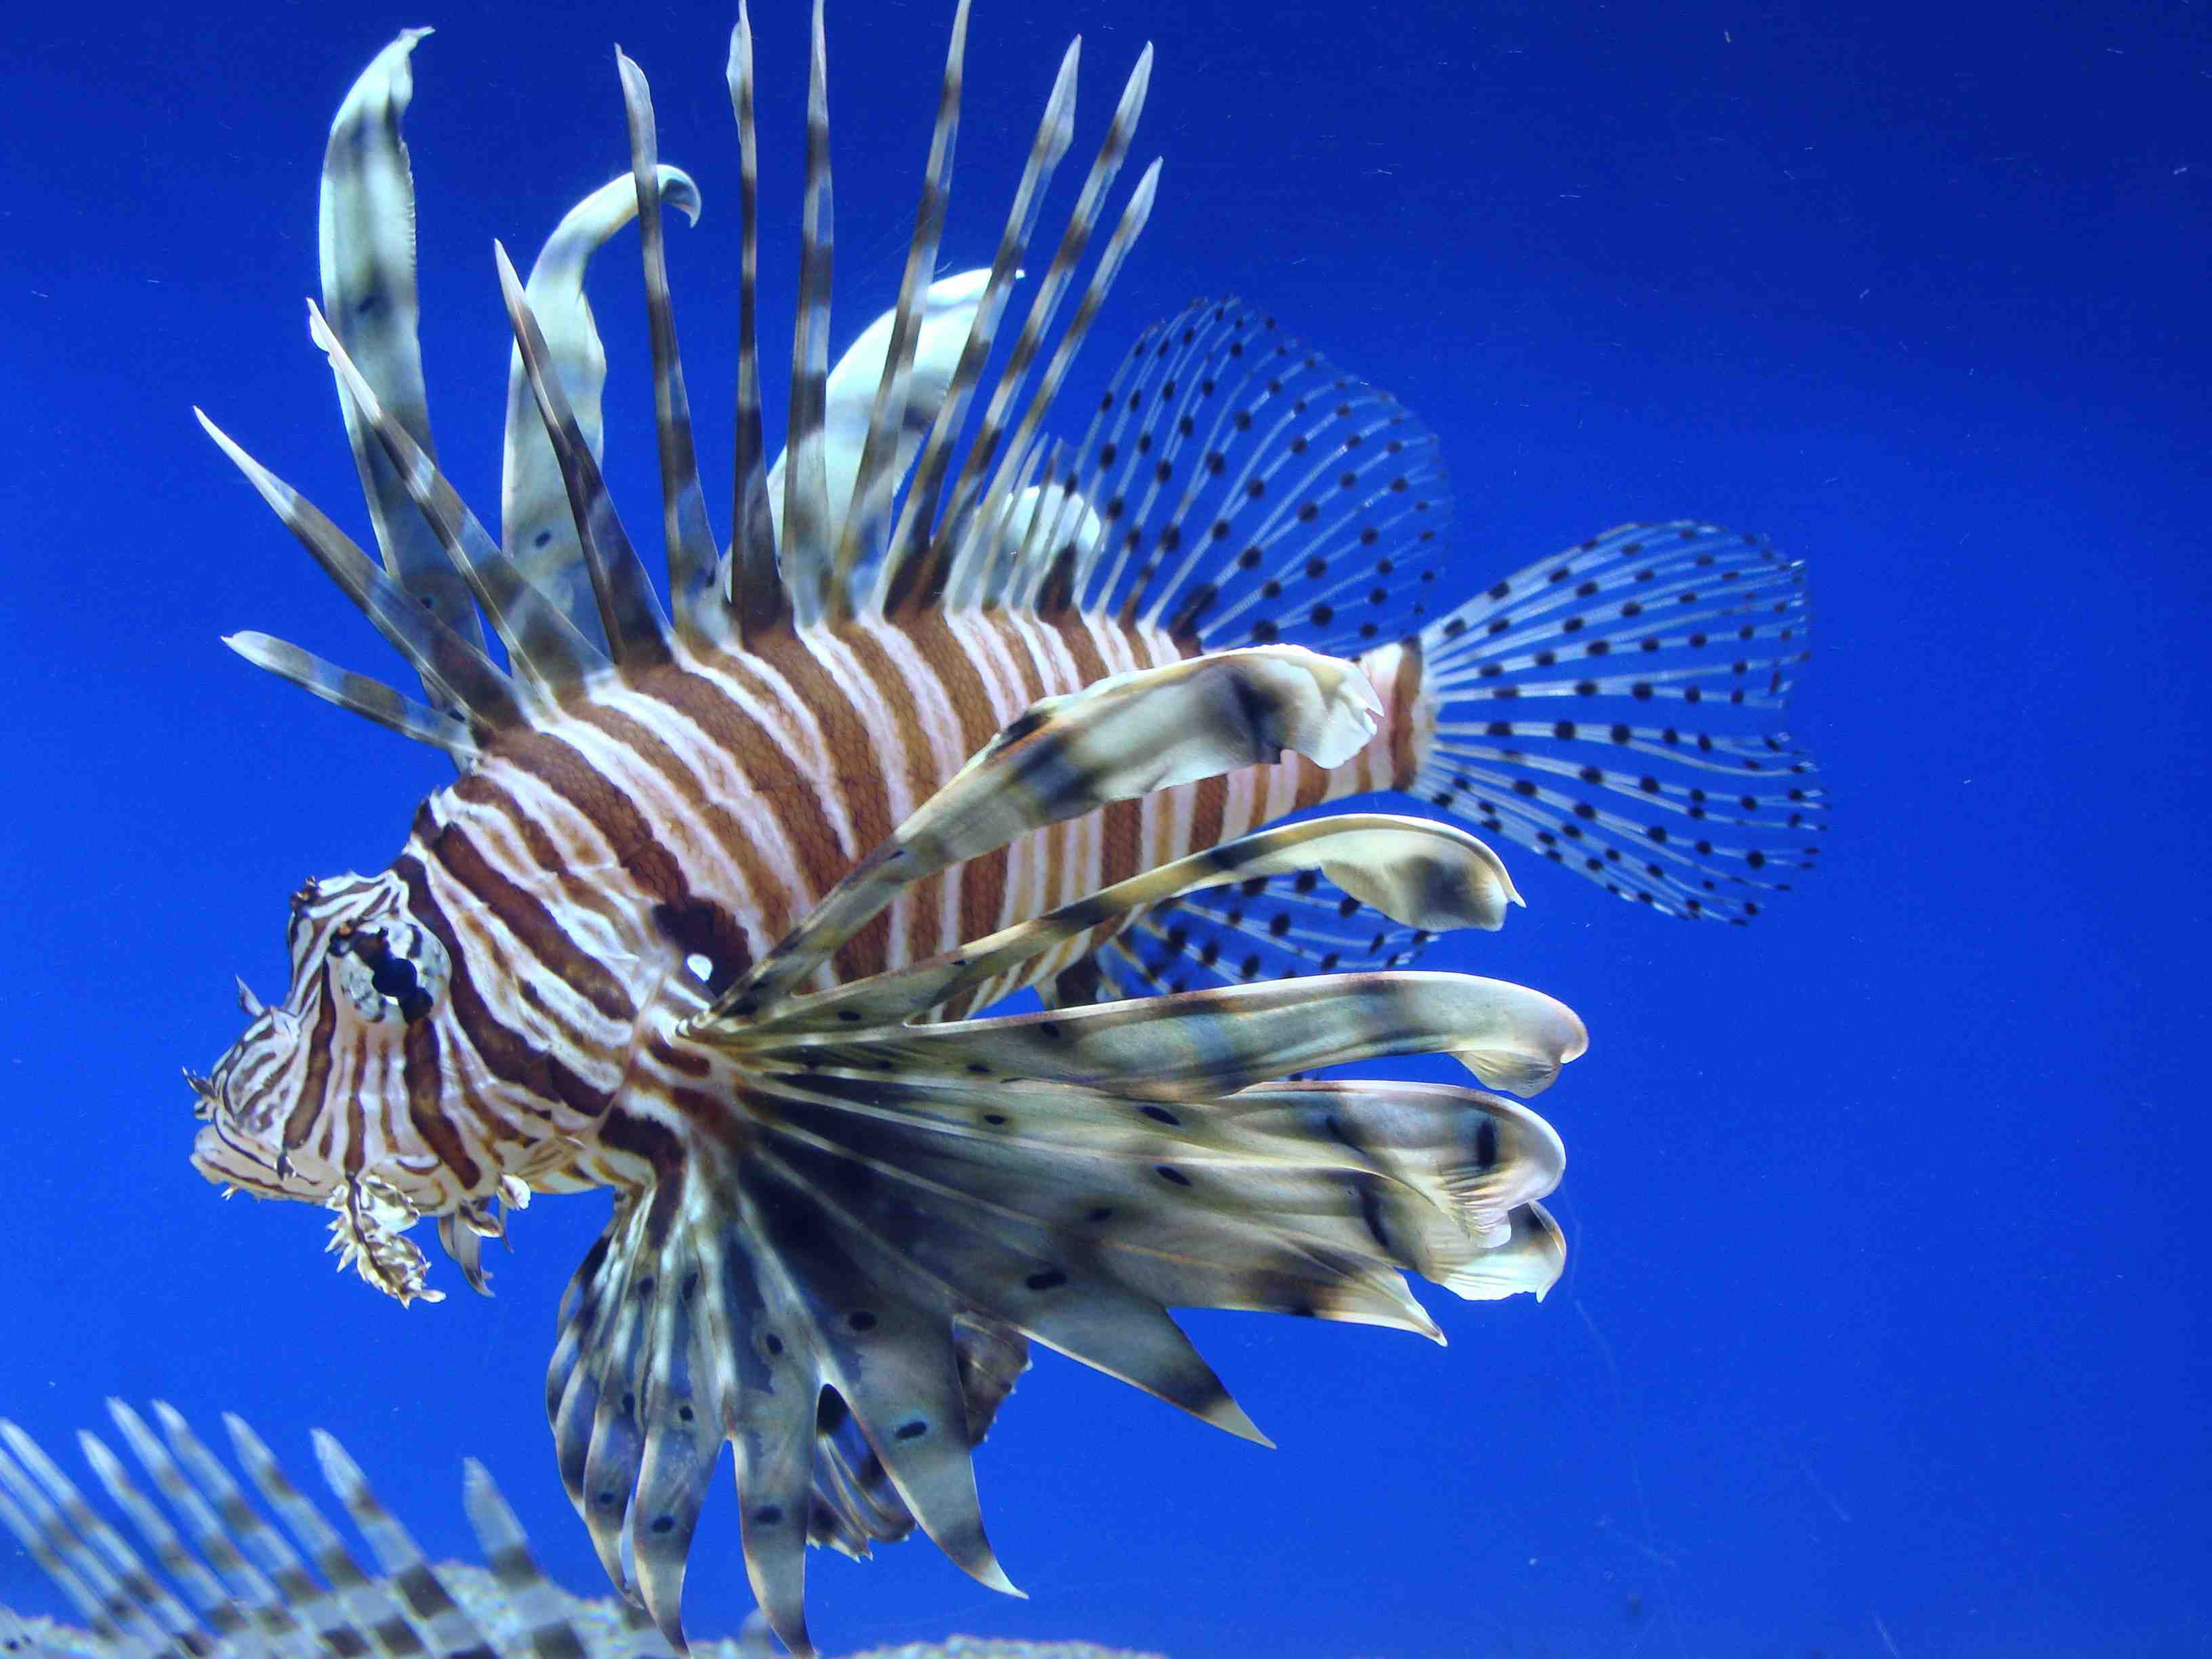 Risking It All For Love: Courtship behavior by a reef fish makes it vulnerable to lionfish predation